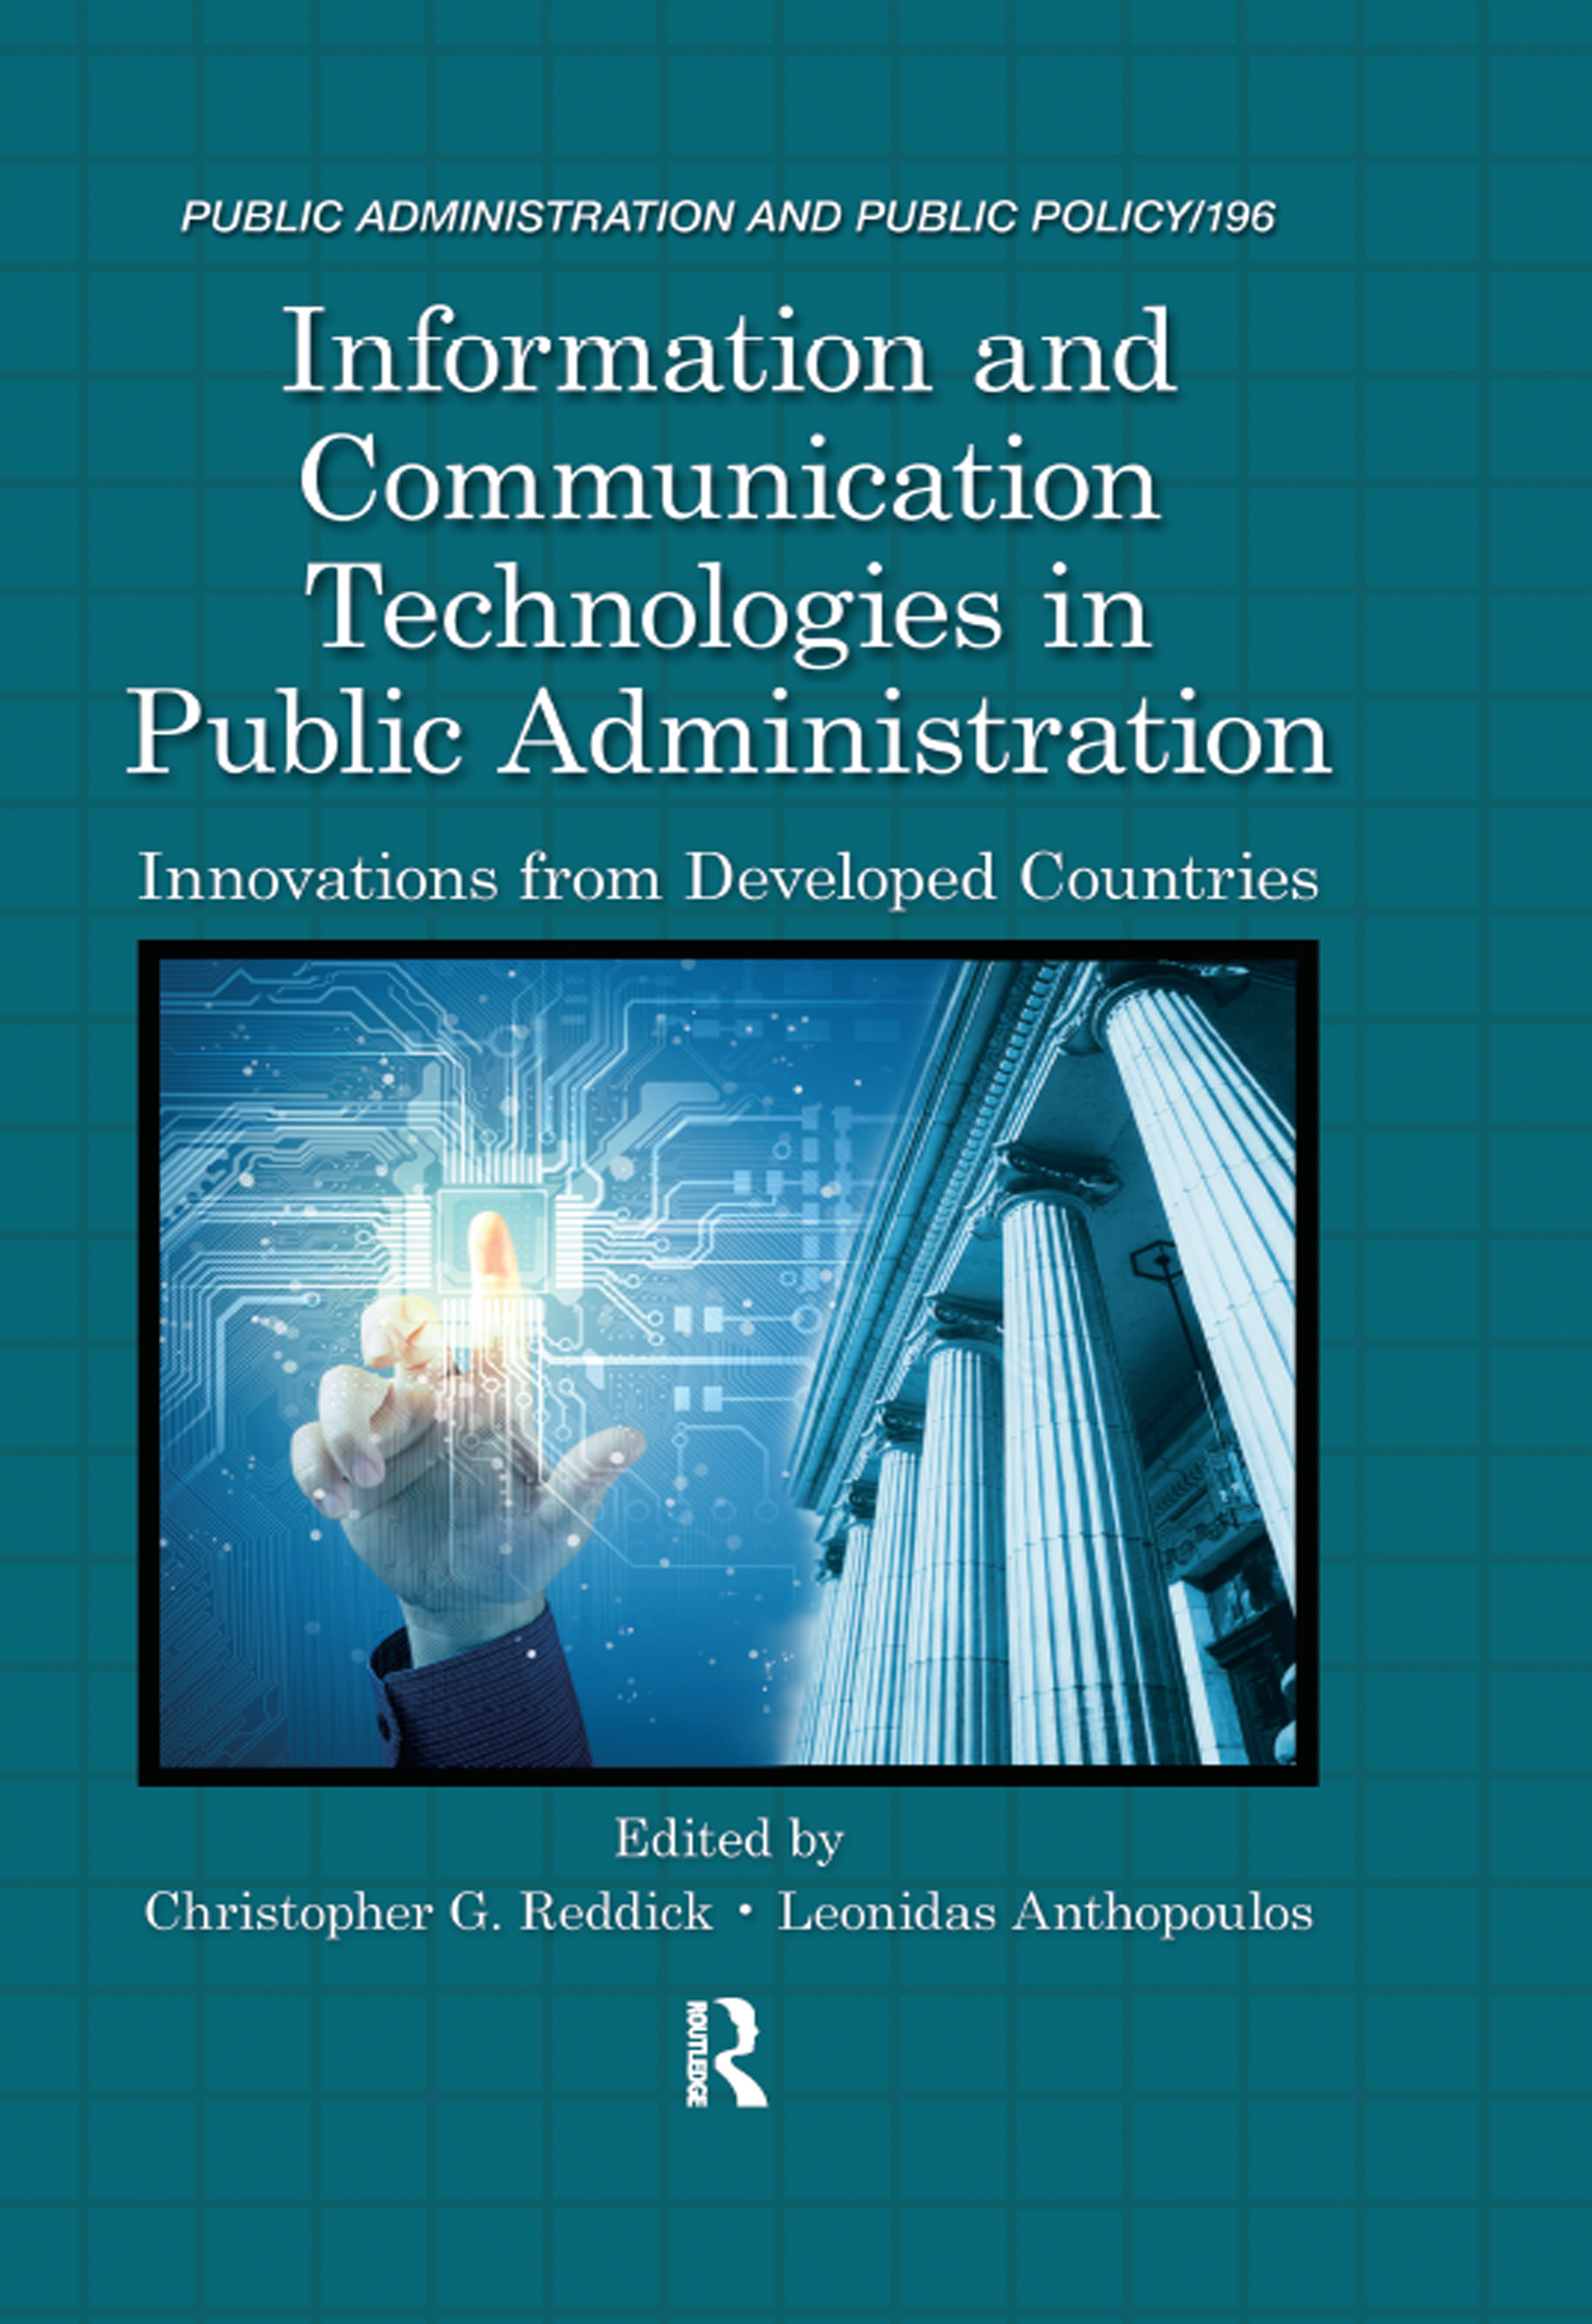 Information and Communication Technologies in Public Administration: Innovations from Developed Countries book cover